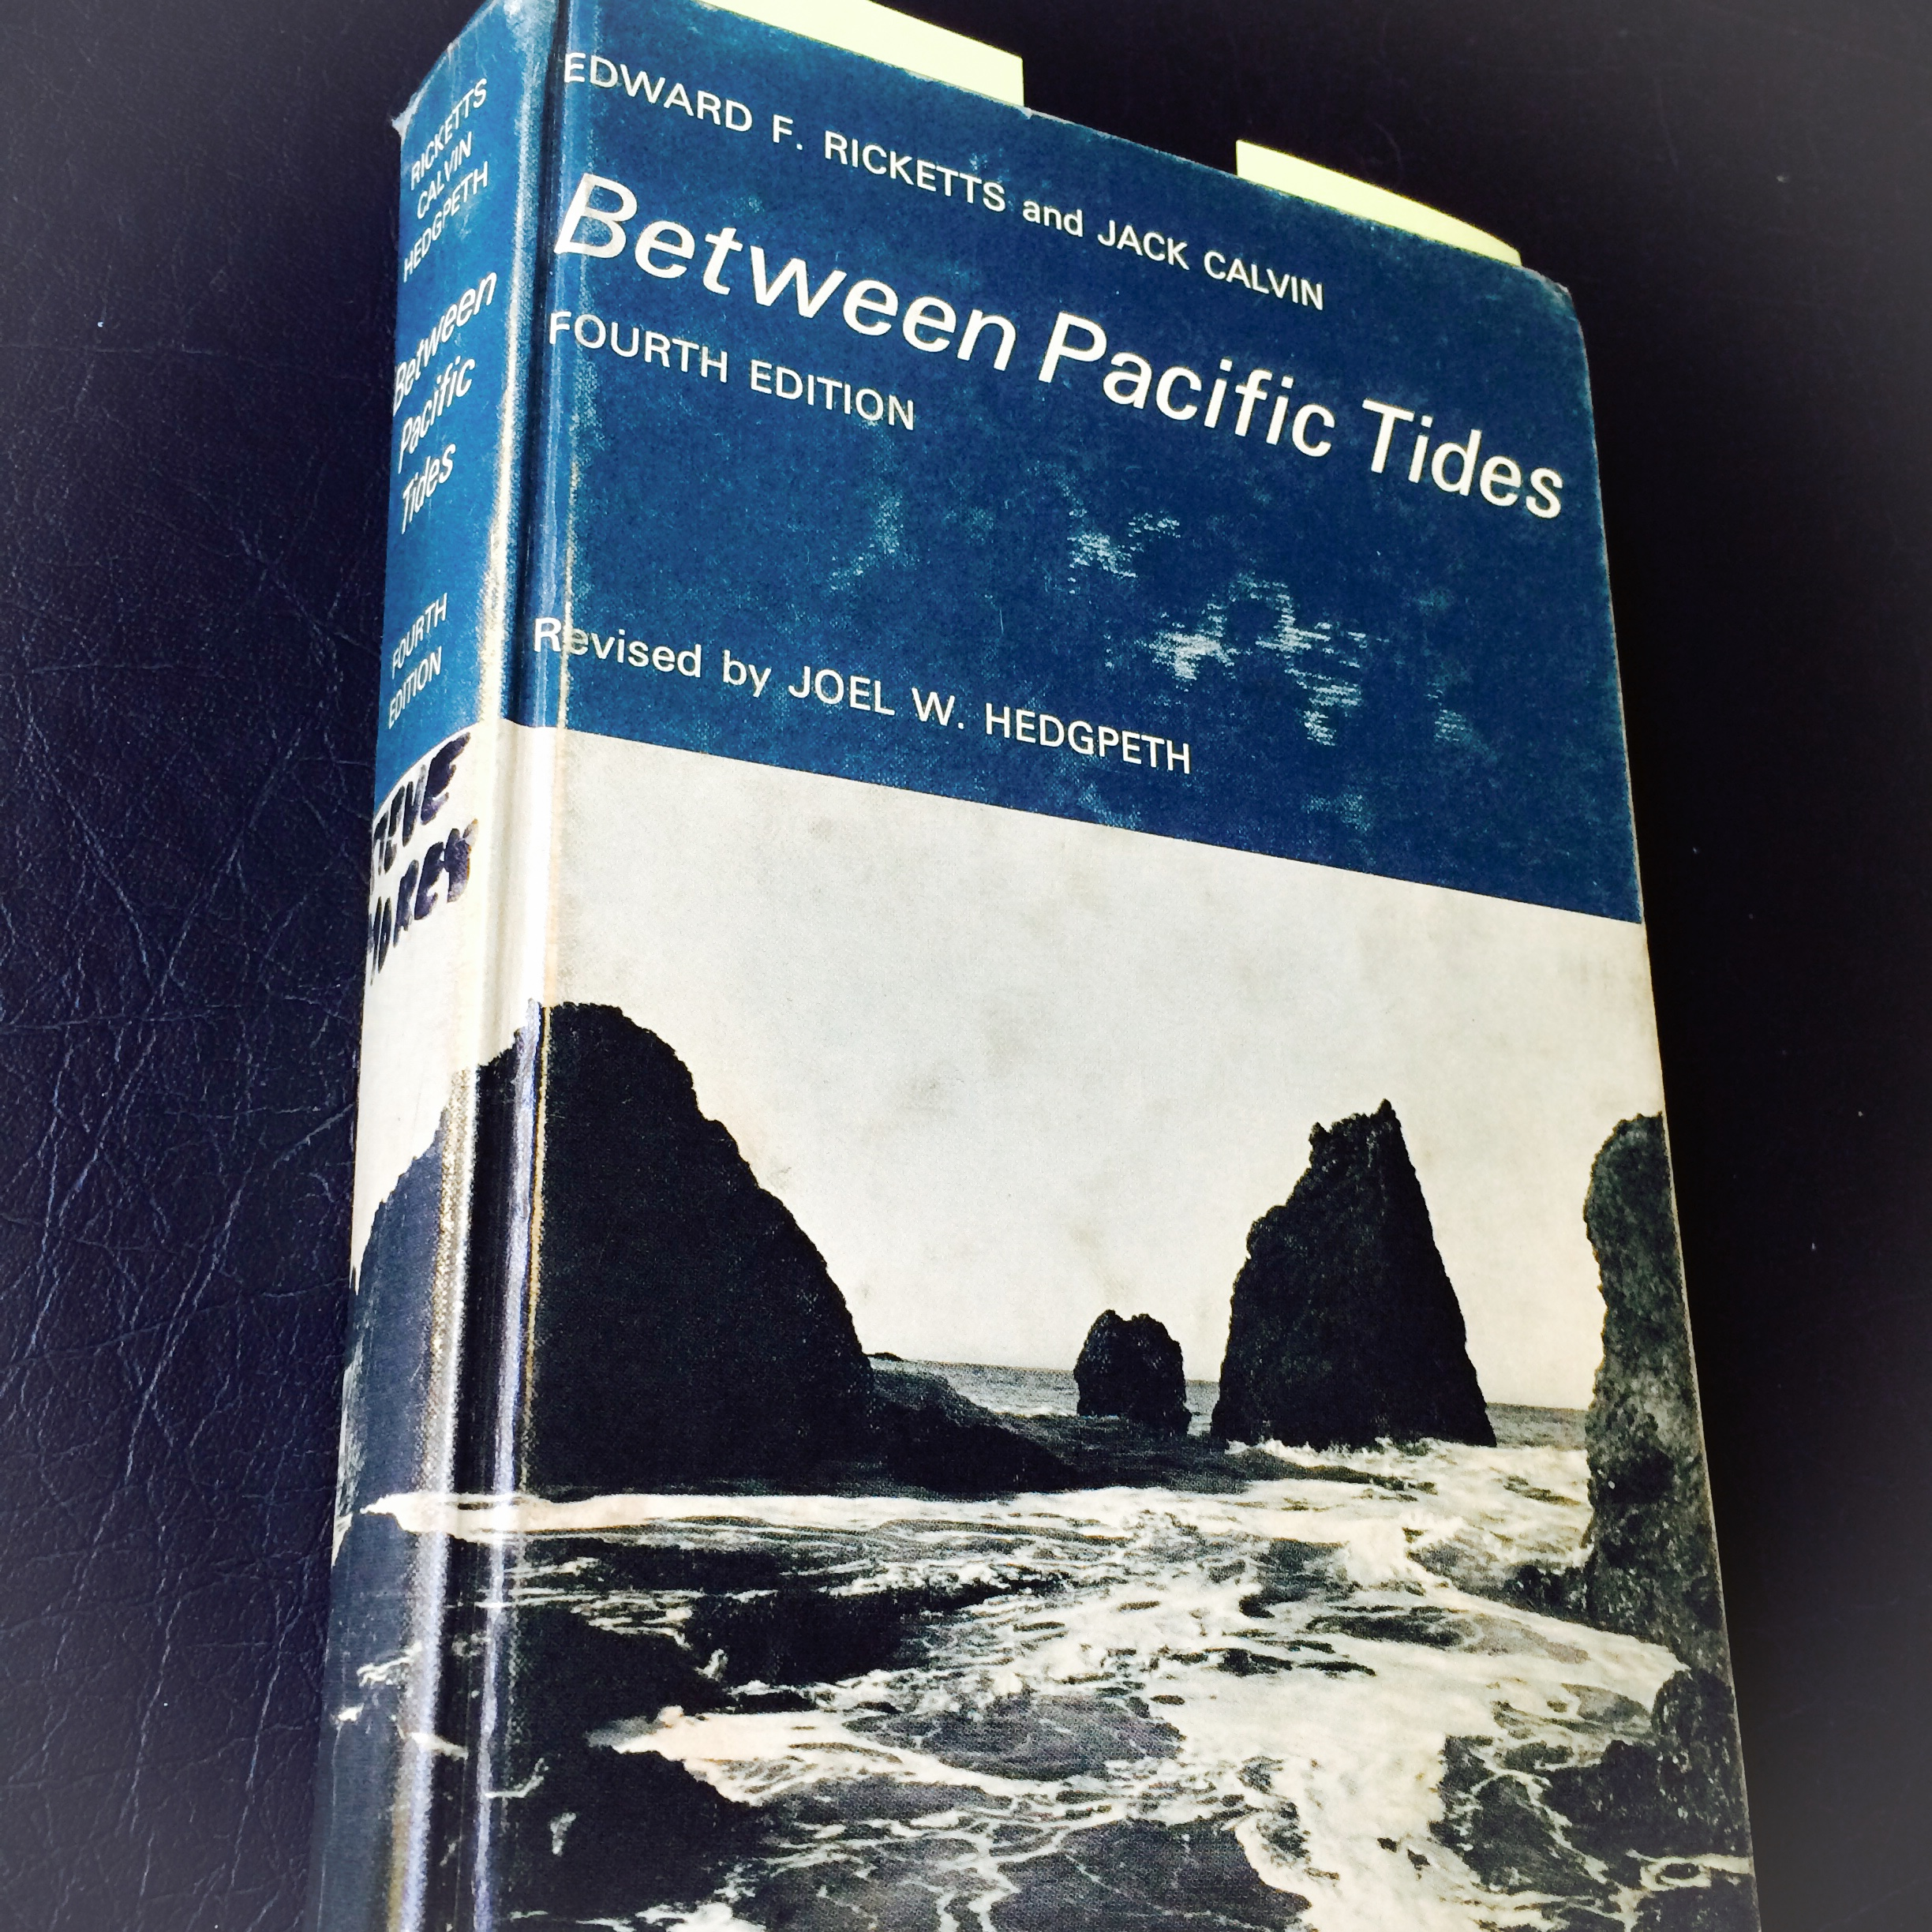 Between Pacific Tides, 4th ed.